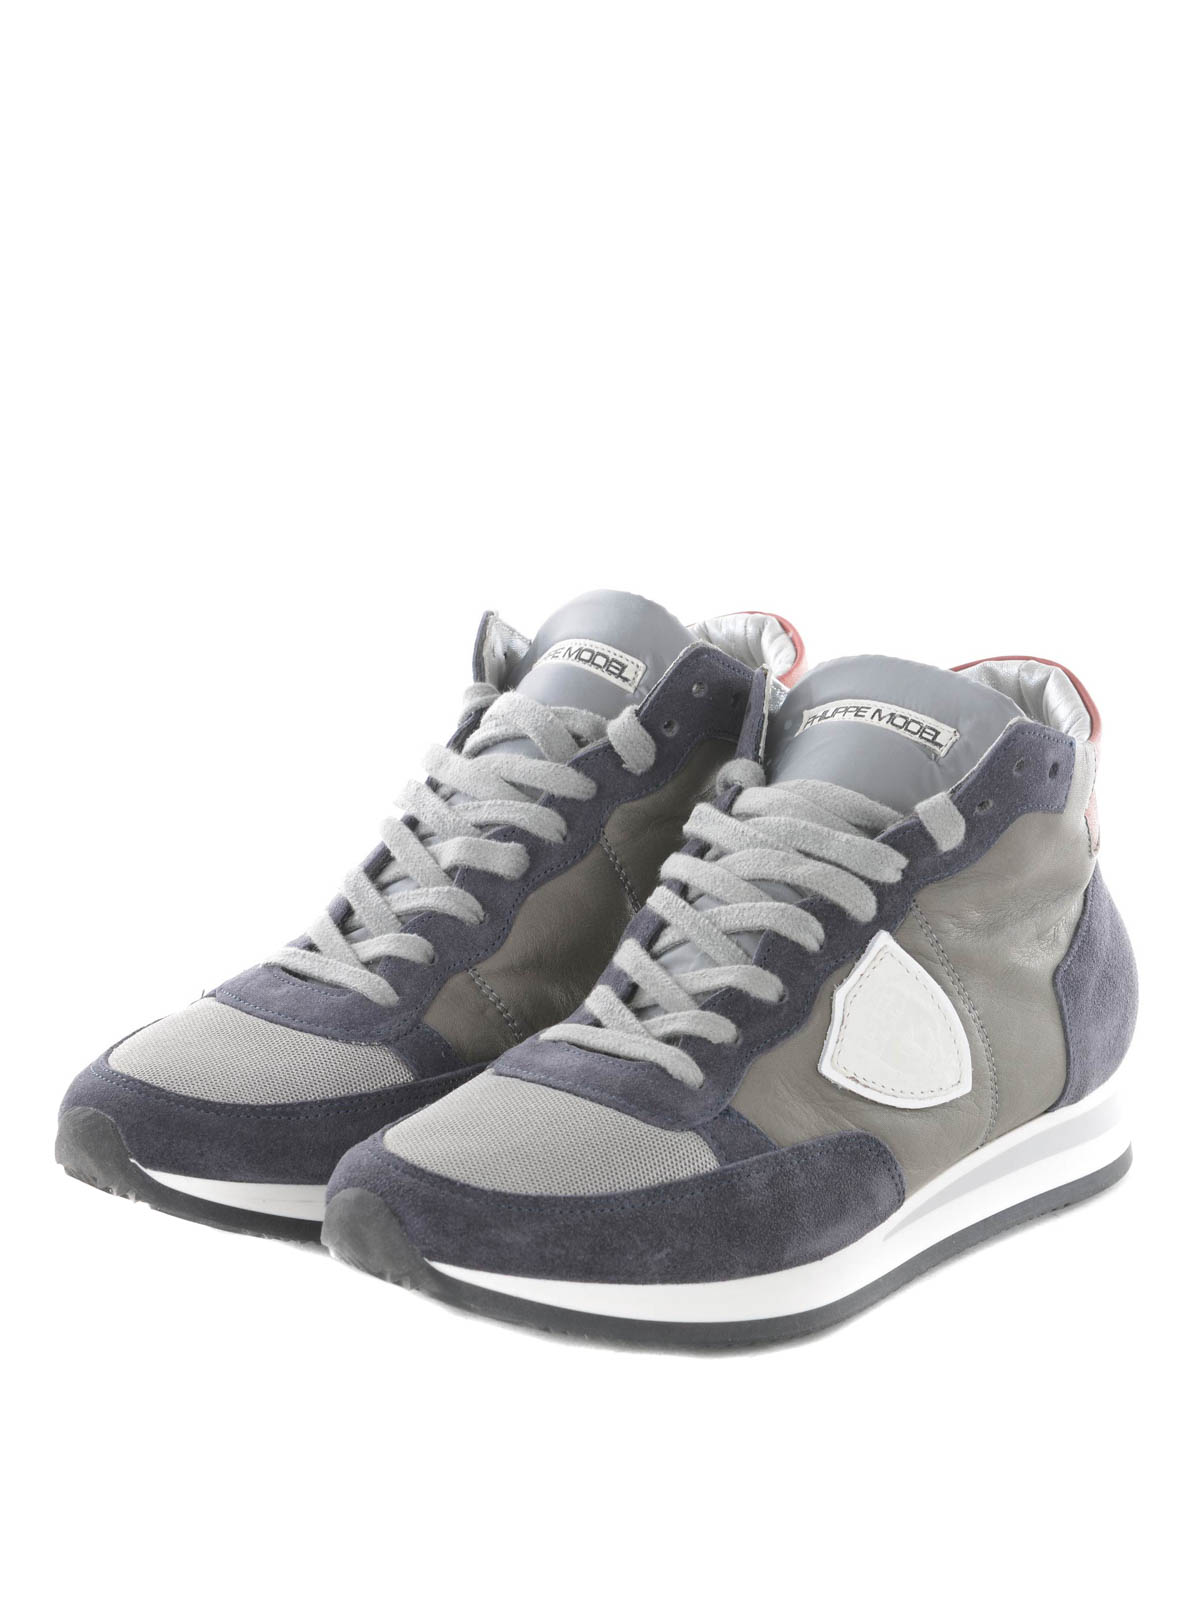 best service 3f88a e0f78 philippe-model-online-trainers-tropez-high-world-hi-top-sneakers-00000087803f00s002.jpg